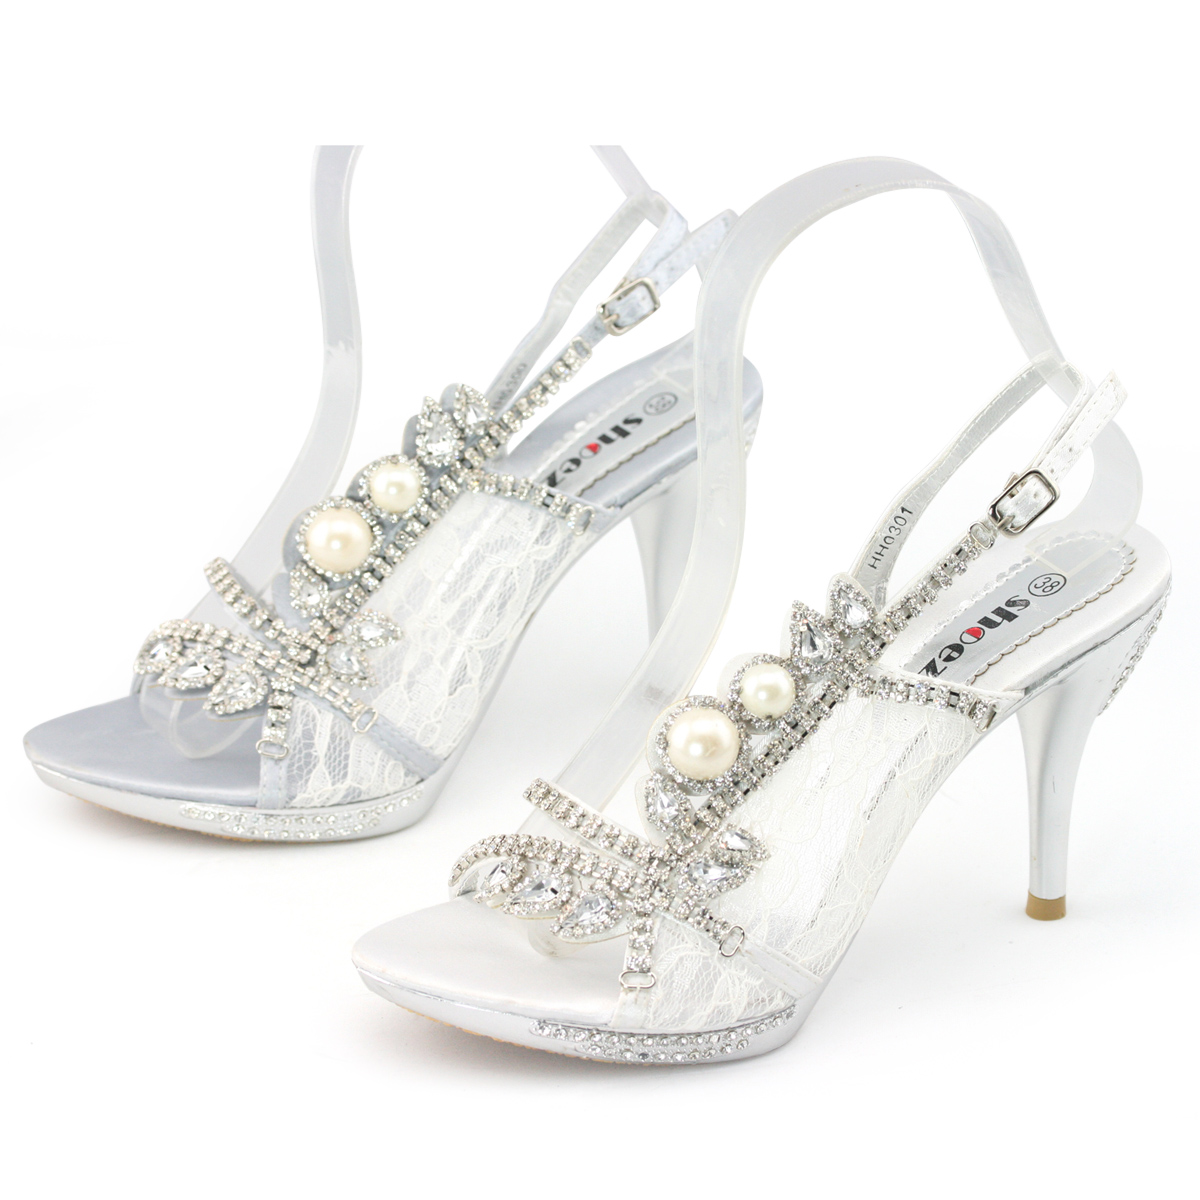 wedding sandals New ladies strappy pearl crystal high platform sandals evening wedding shoes sz